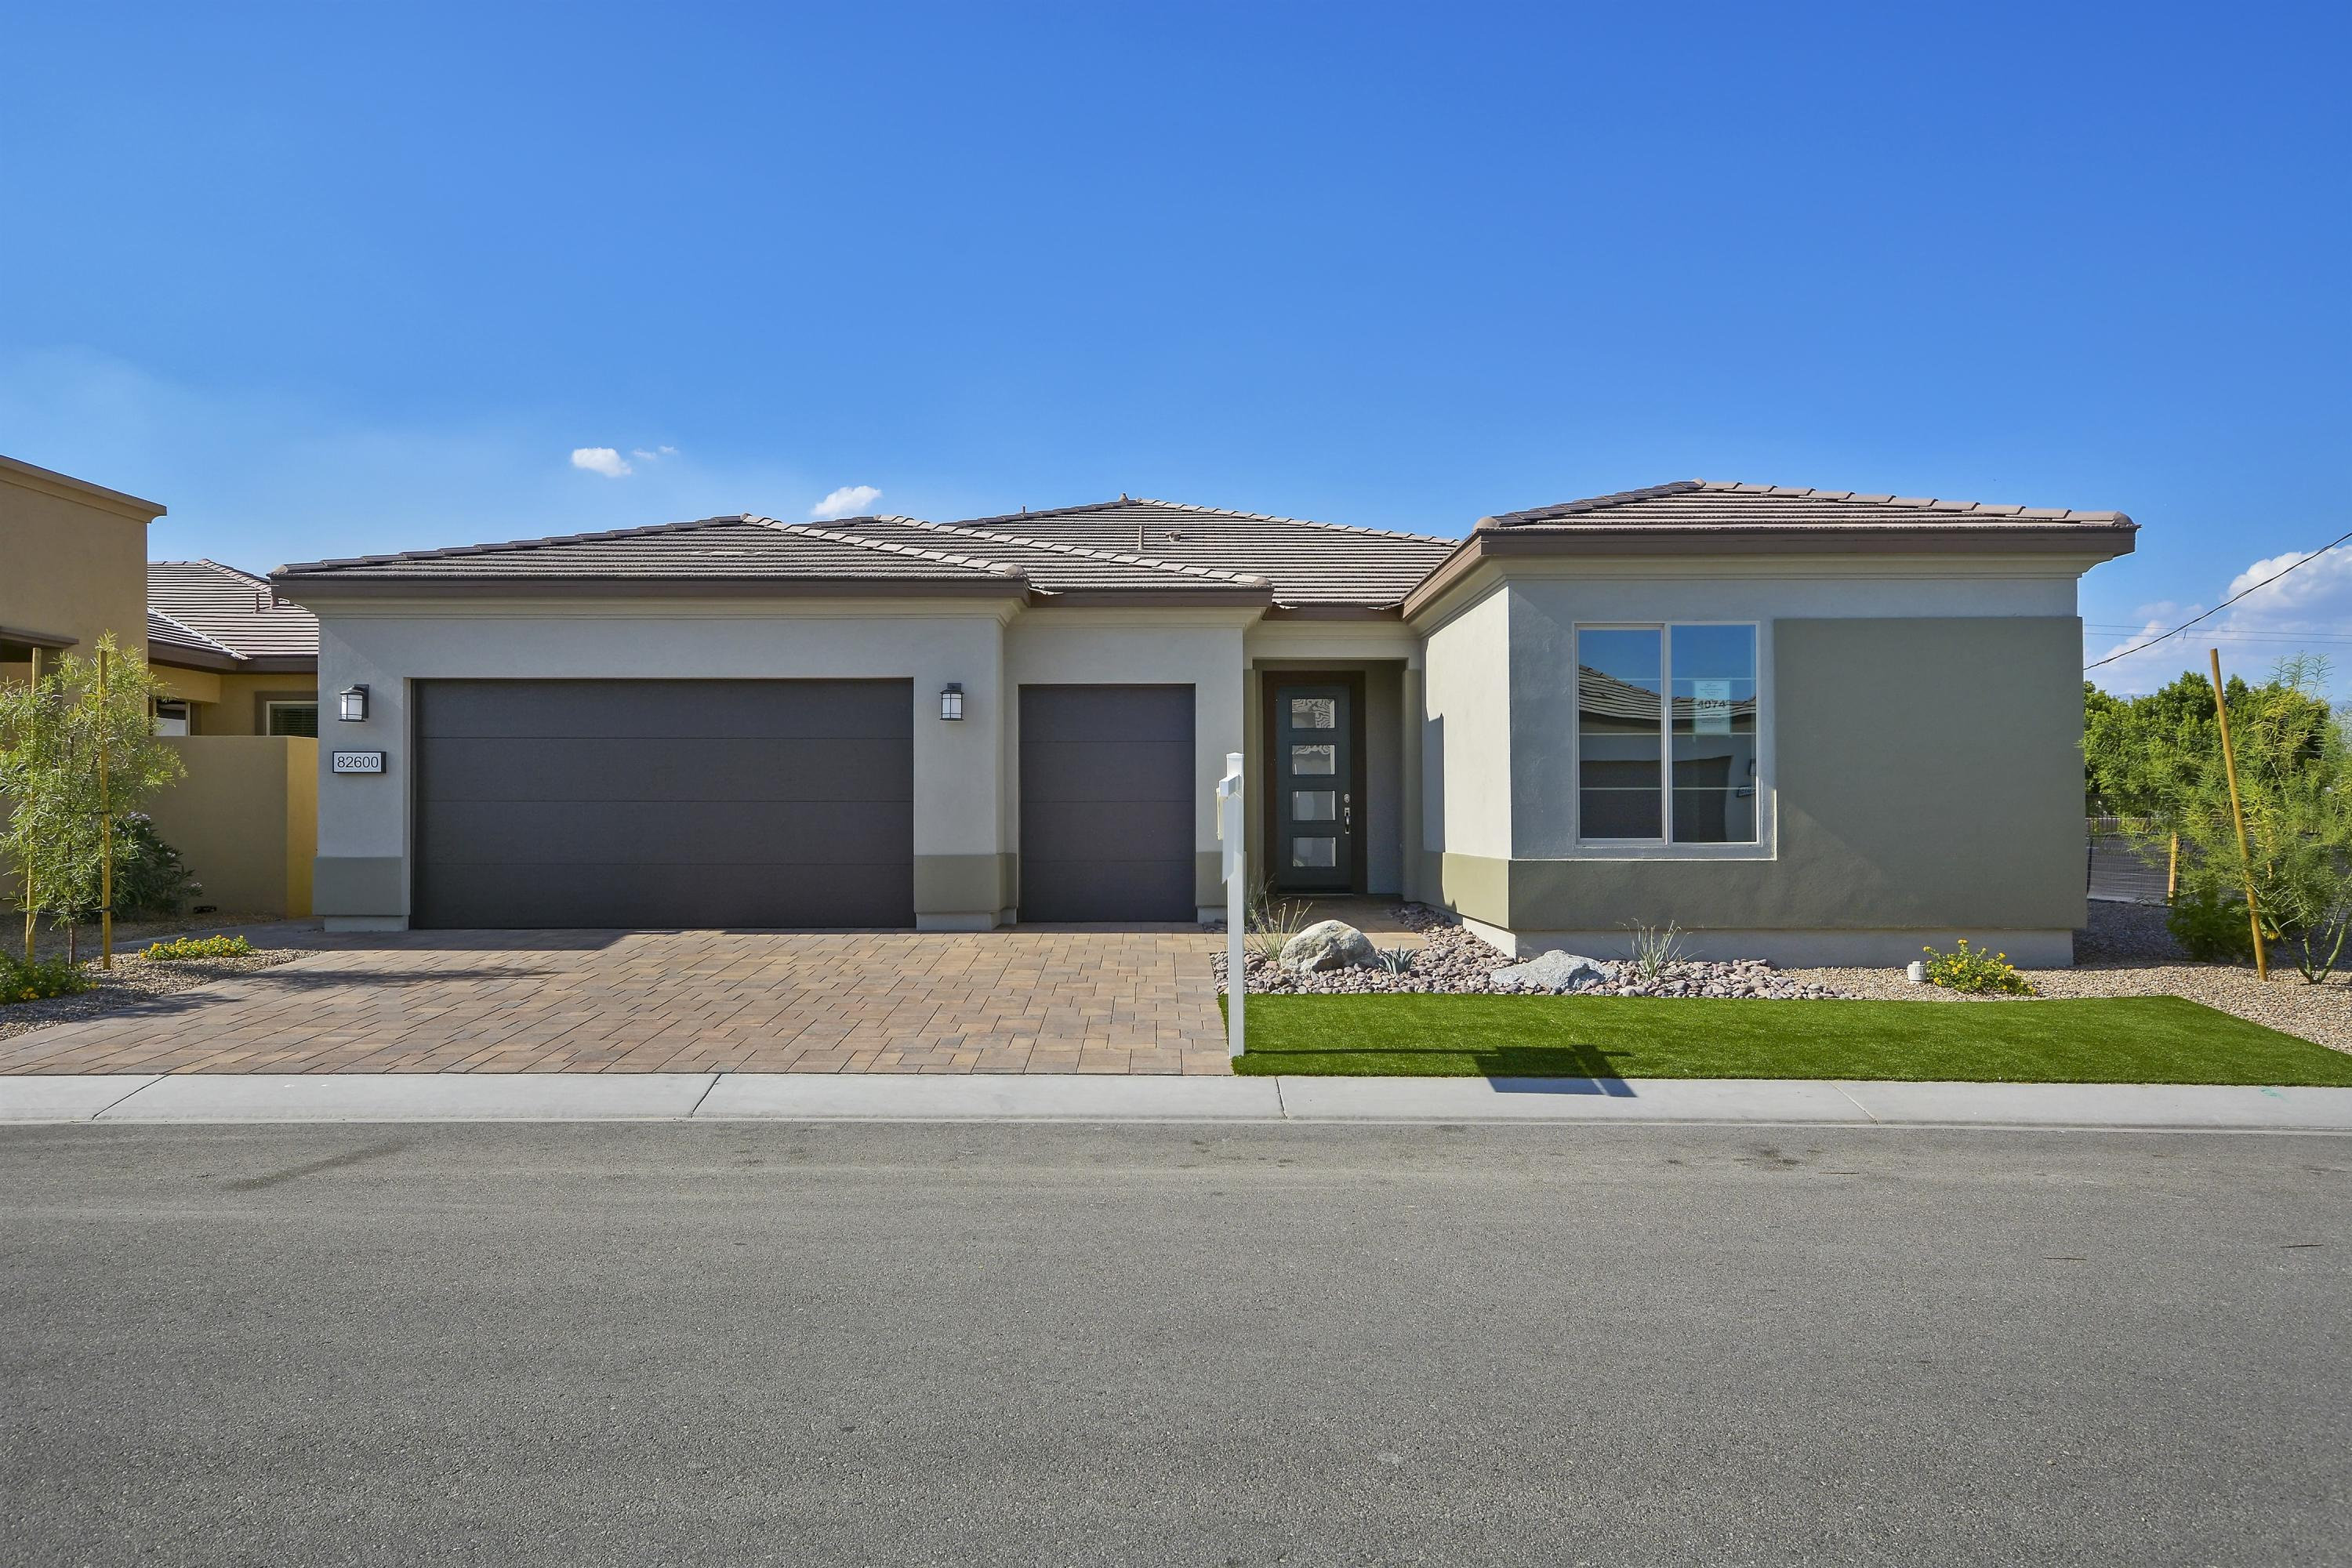 Photo of 82600 East Mccarroll (Lot 4074) Drive, Indio, CA 92201